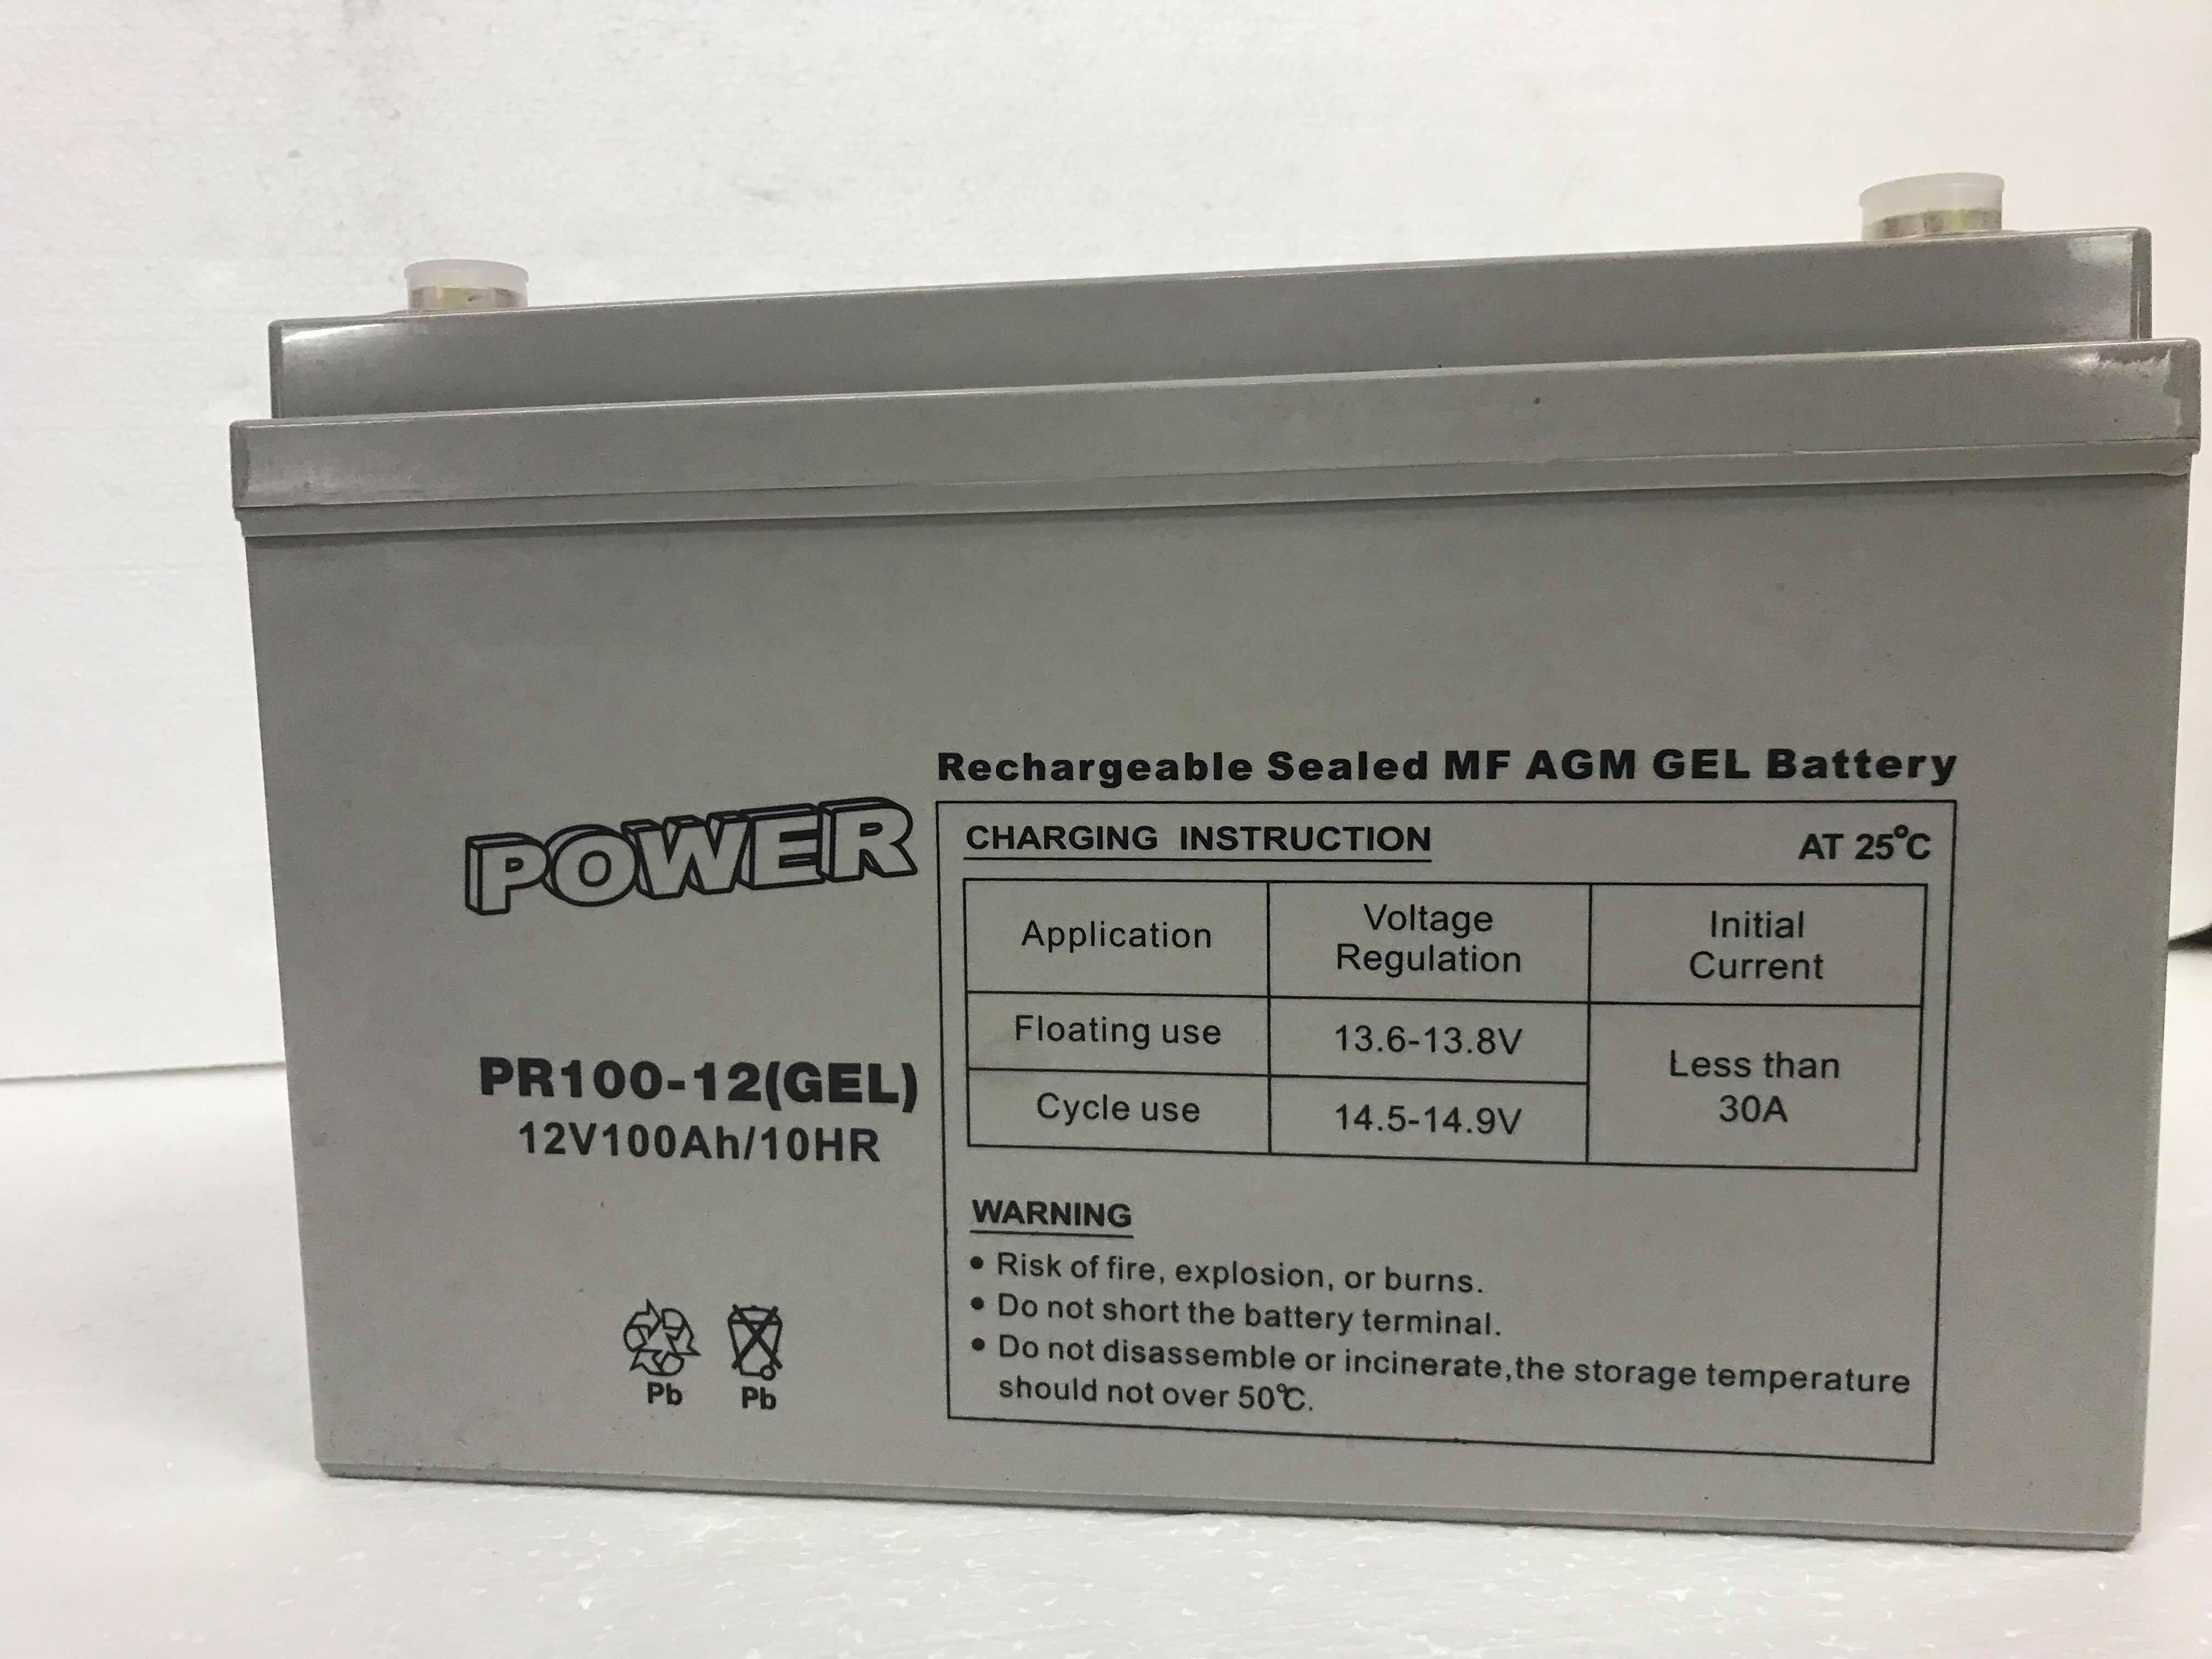 POWER (GEL) MARINE & SOLAR 12V 100AH